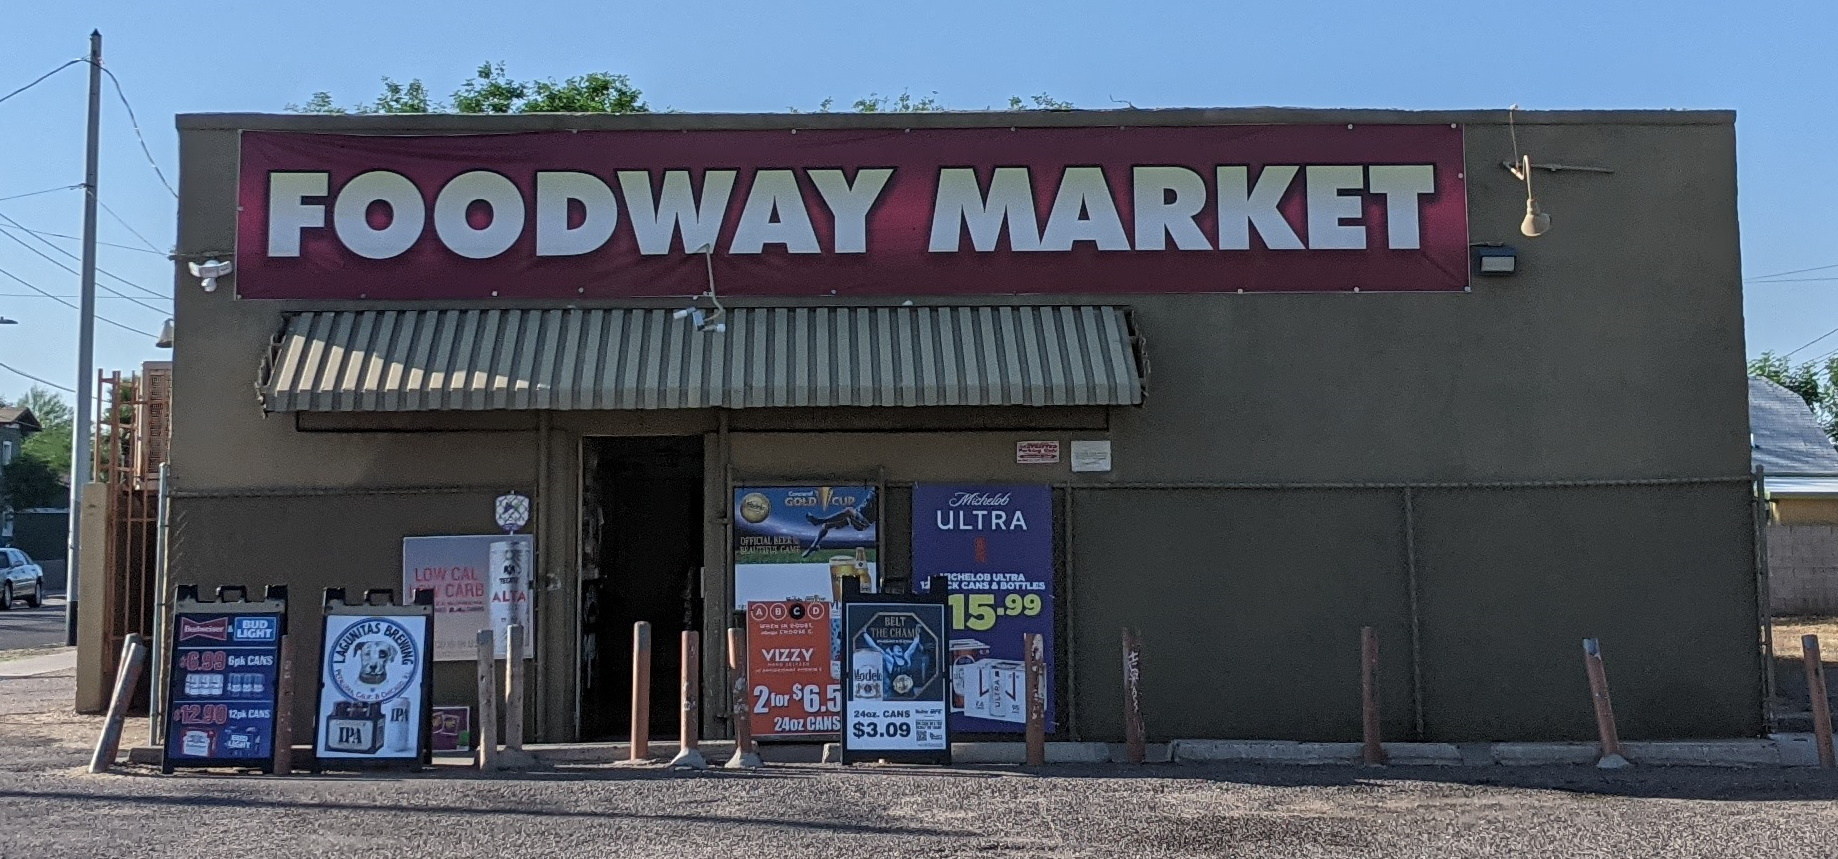 Foodway Market